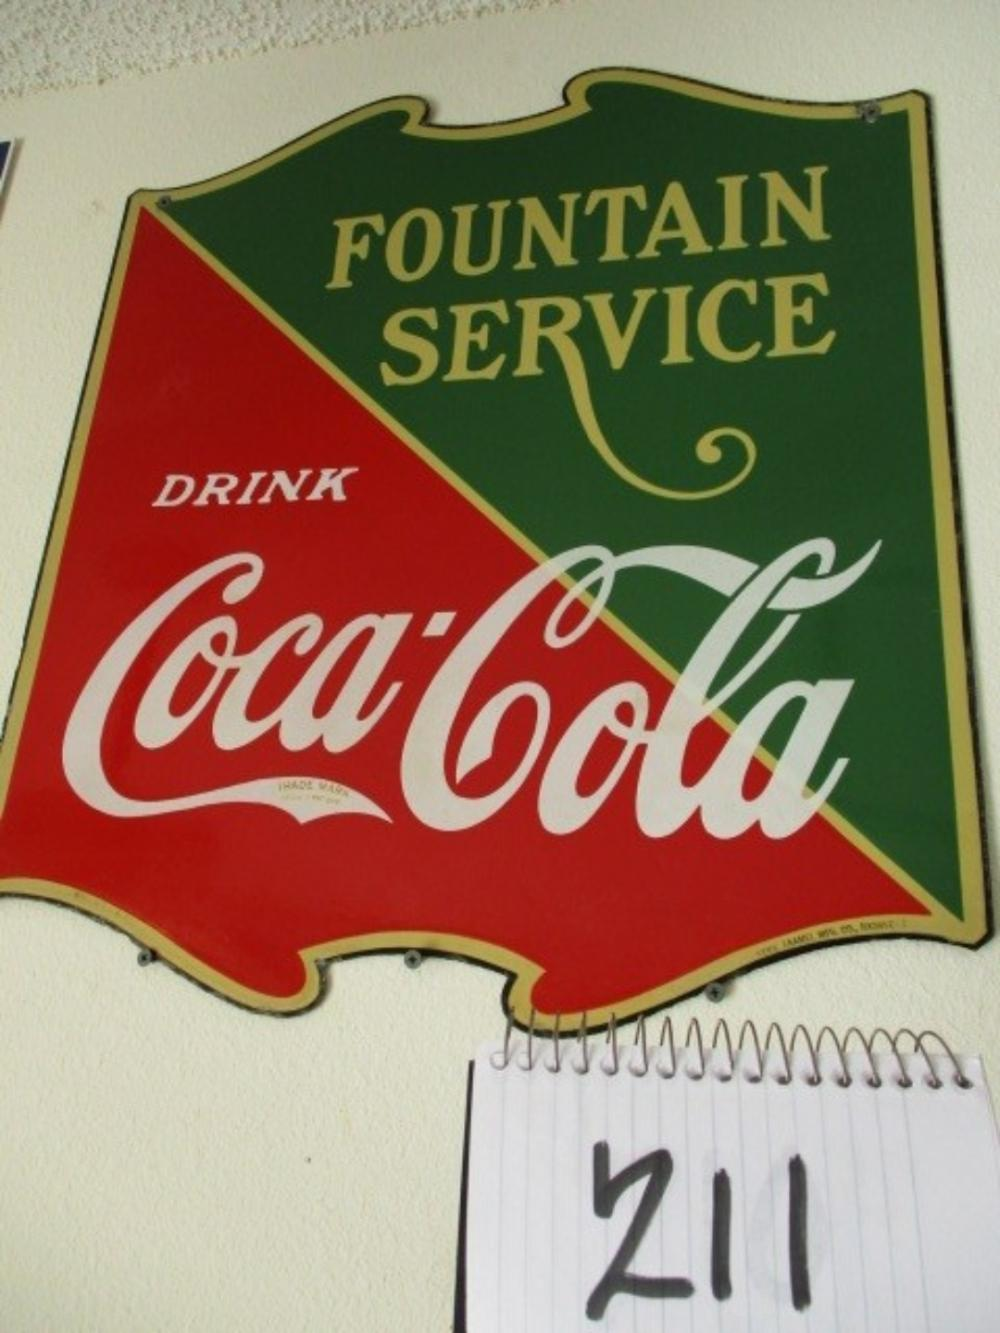 "Fountain Service Drink Coca Cola 25""x23"" Double Sided Porcelain Sign"